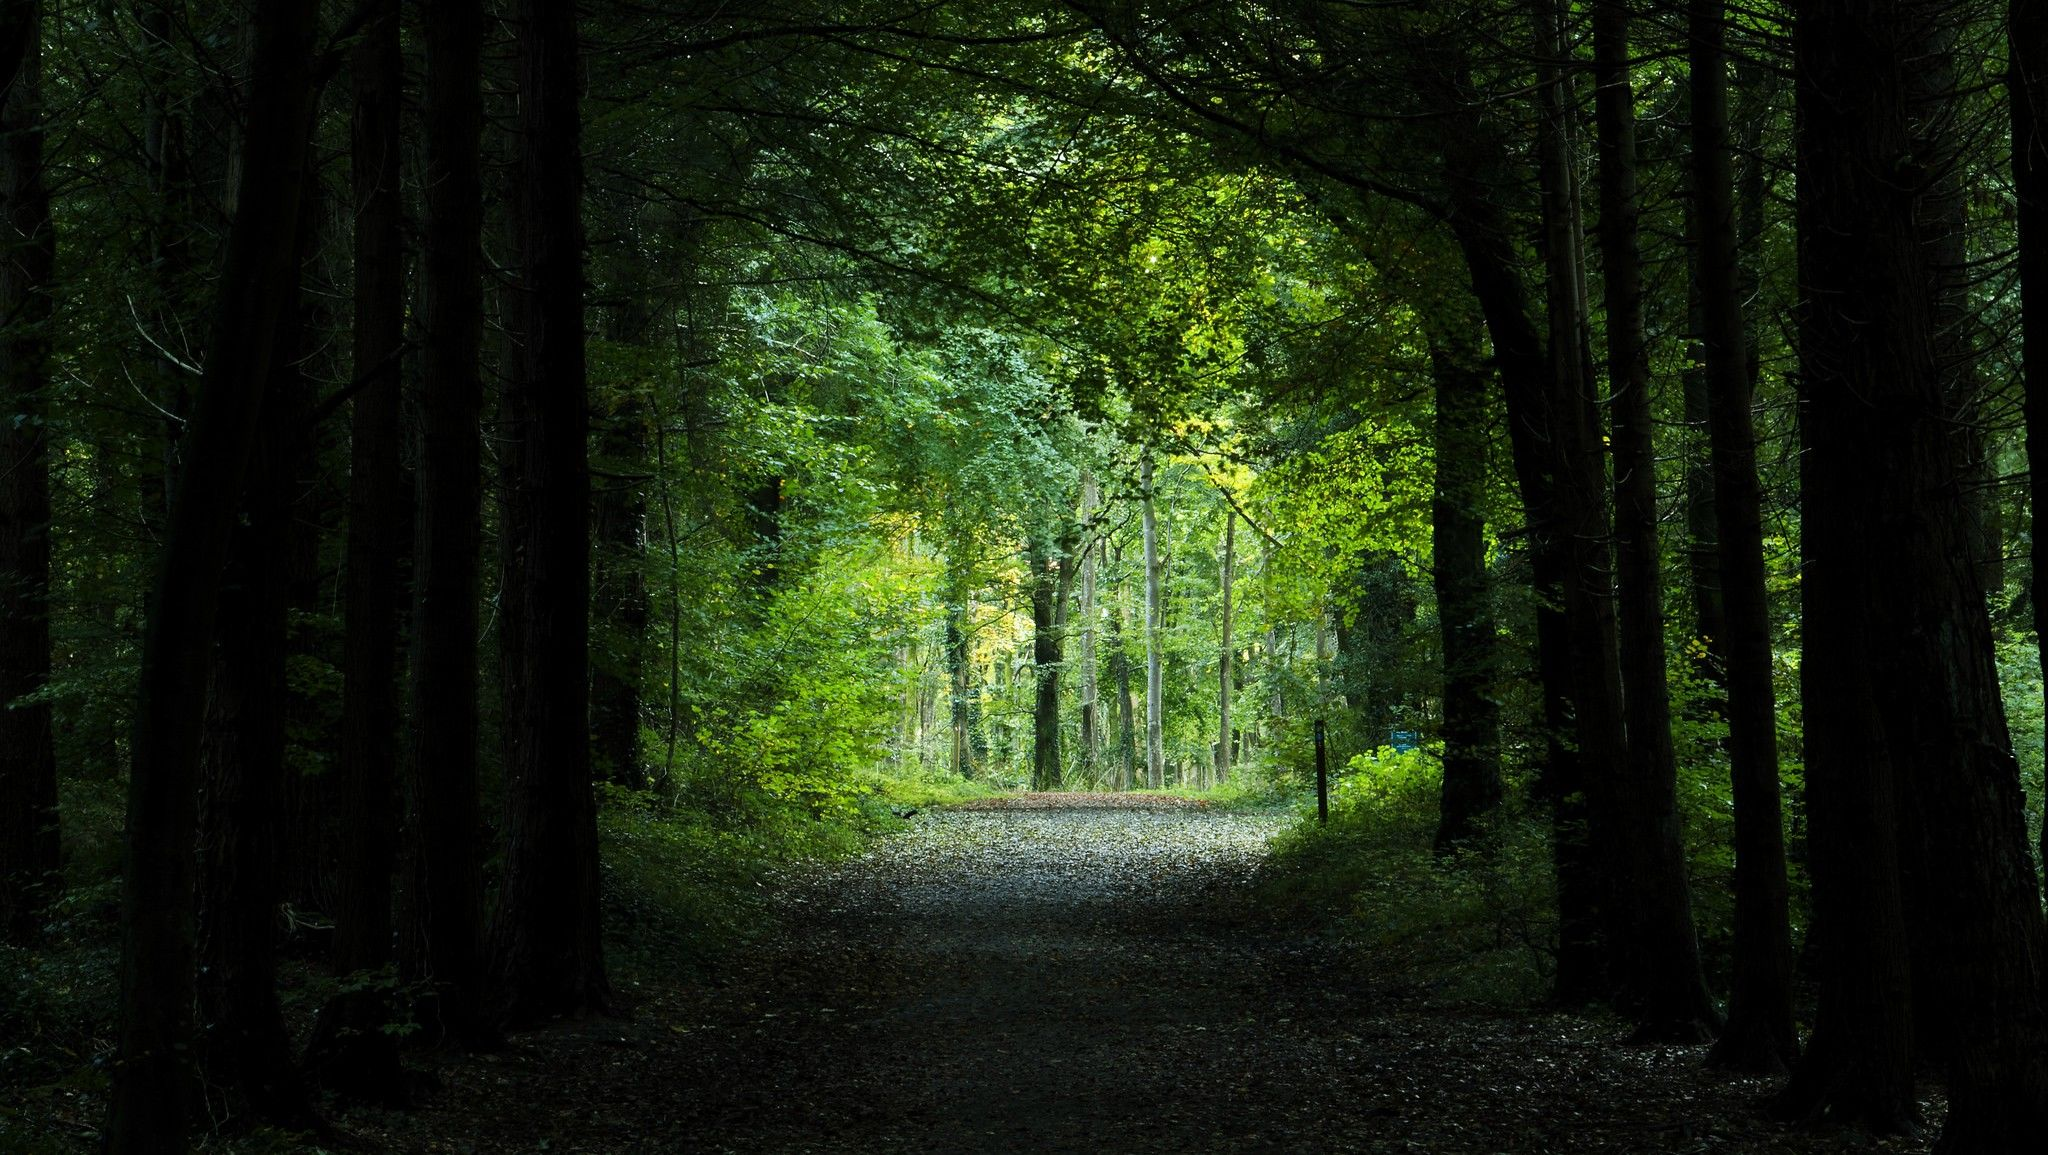 European Single Market >> Will the European Parliament take the high road on climate and forests? – EURACTIV.com